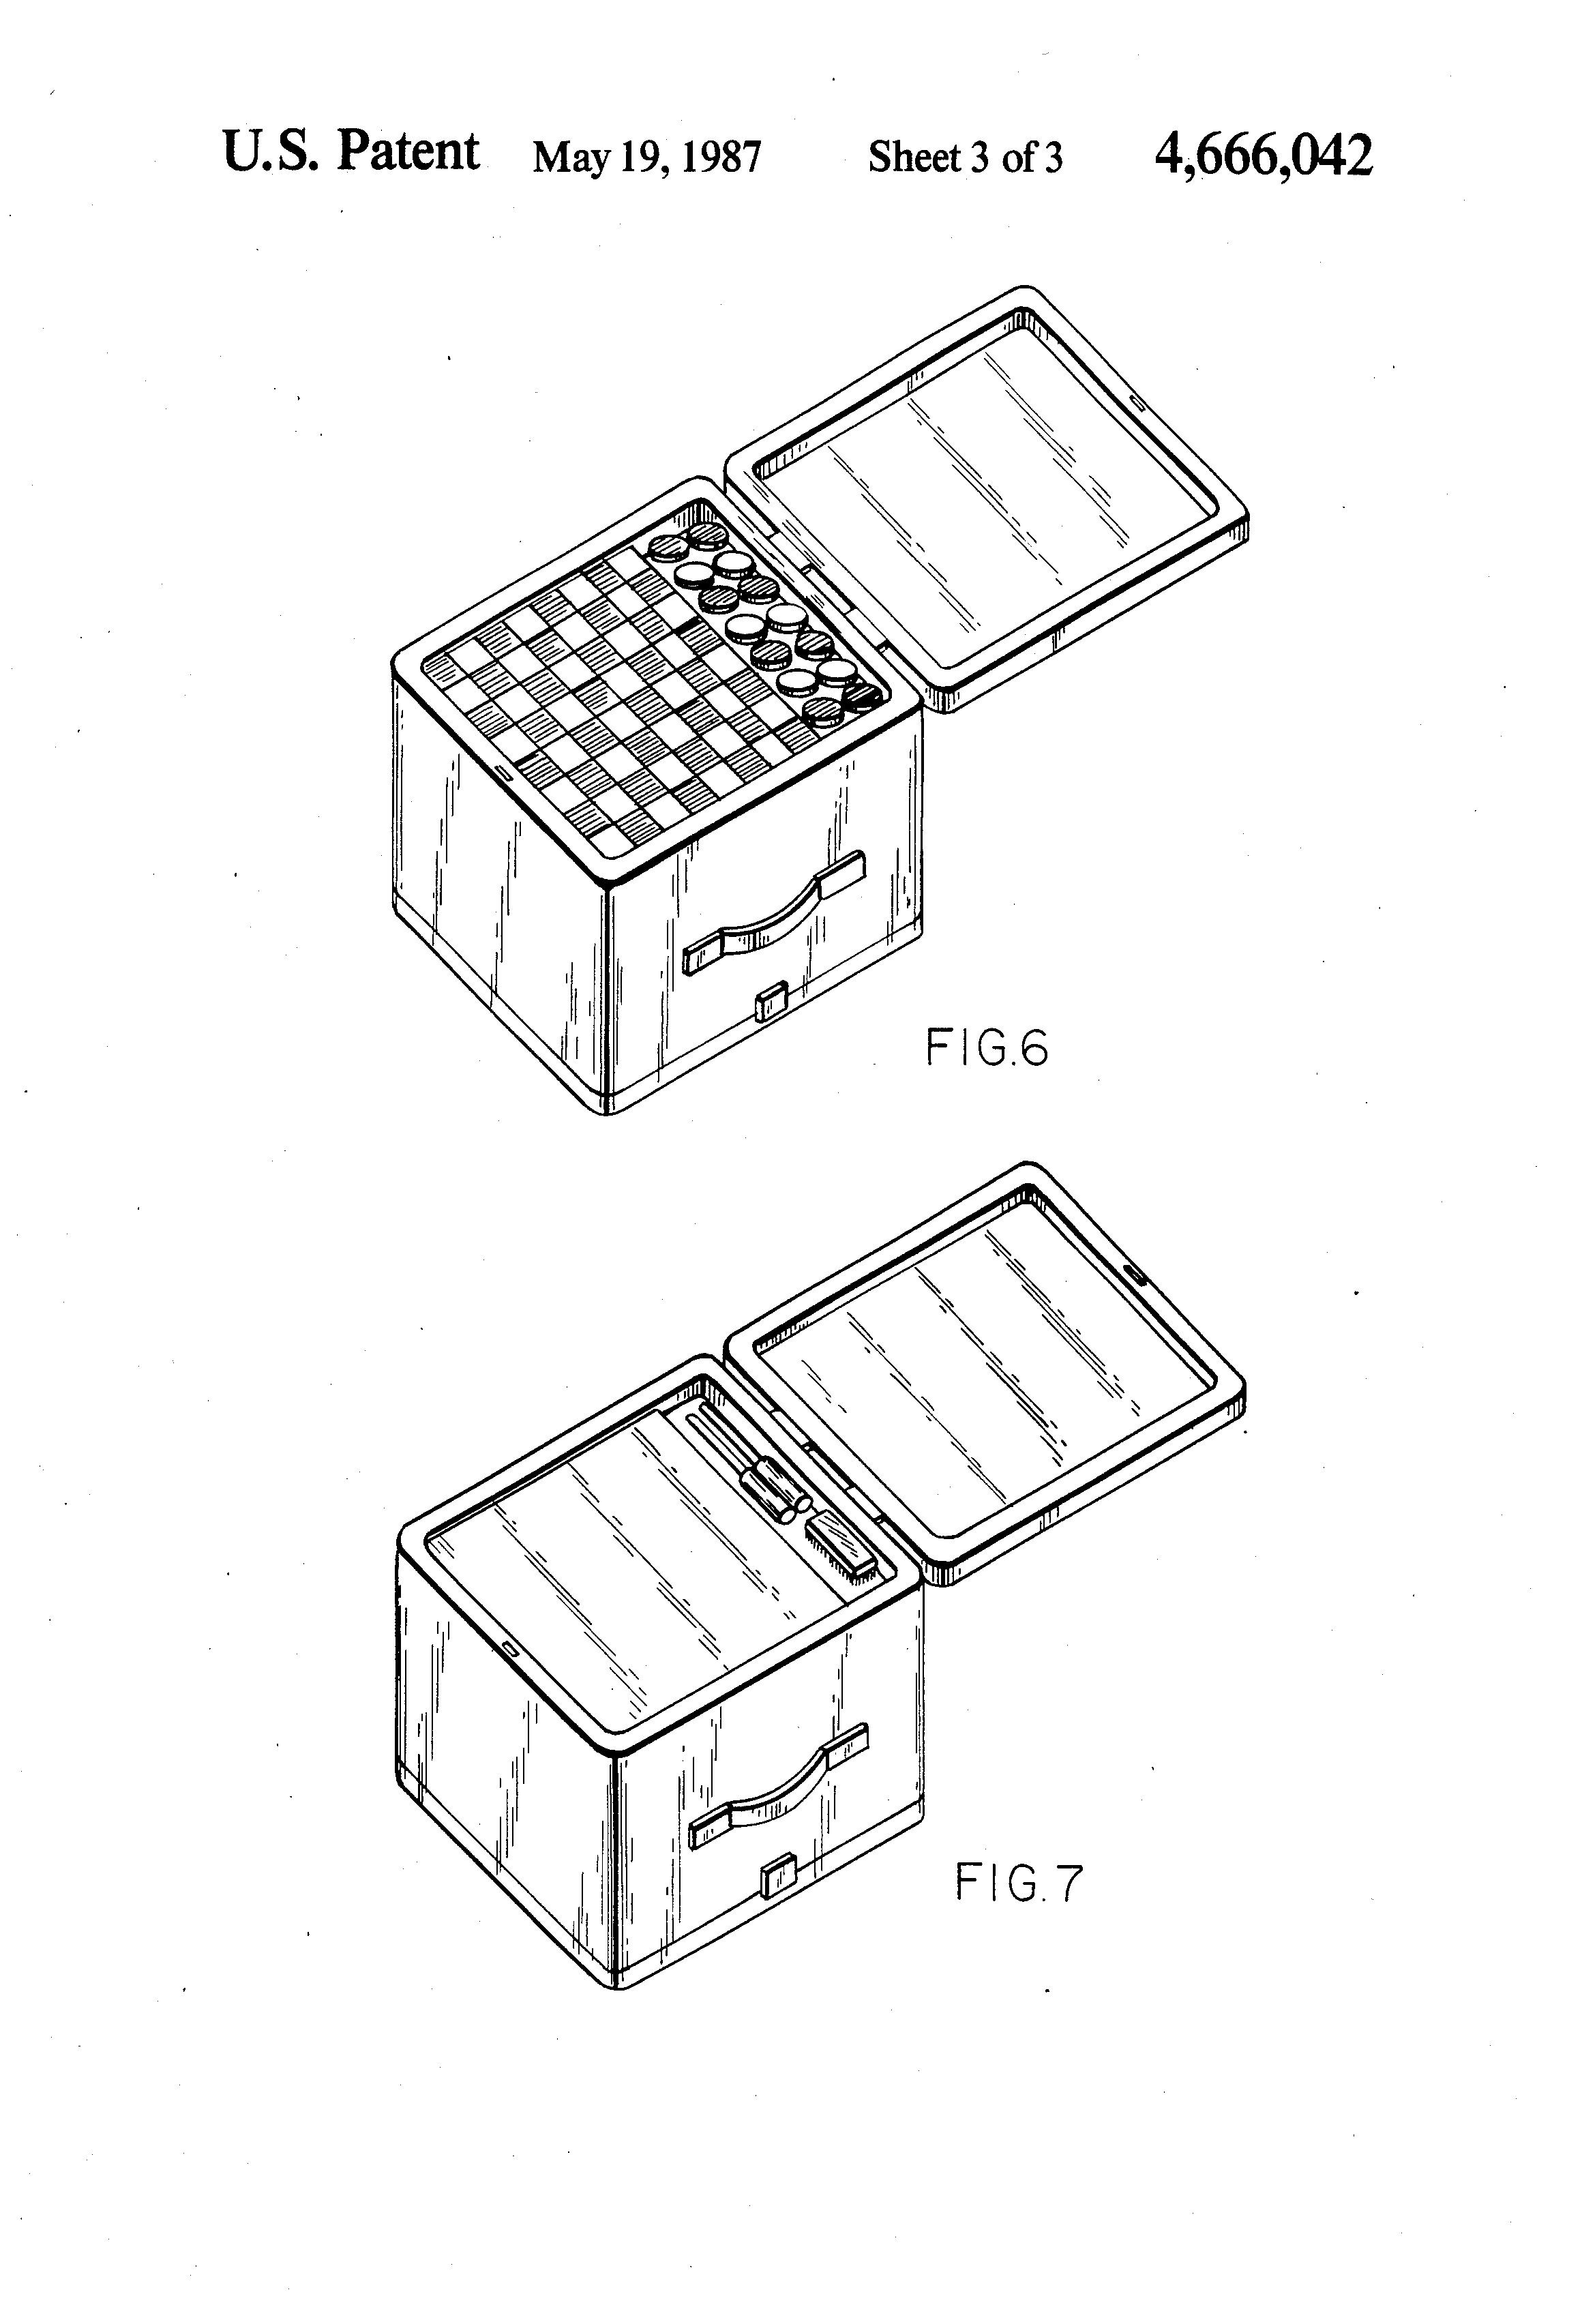 This Transformable Lunch Box Robot Patent Is Fun